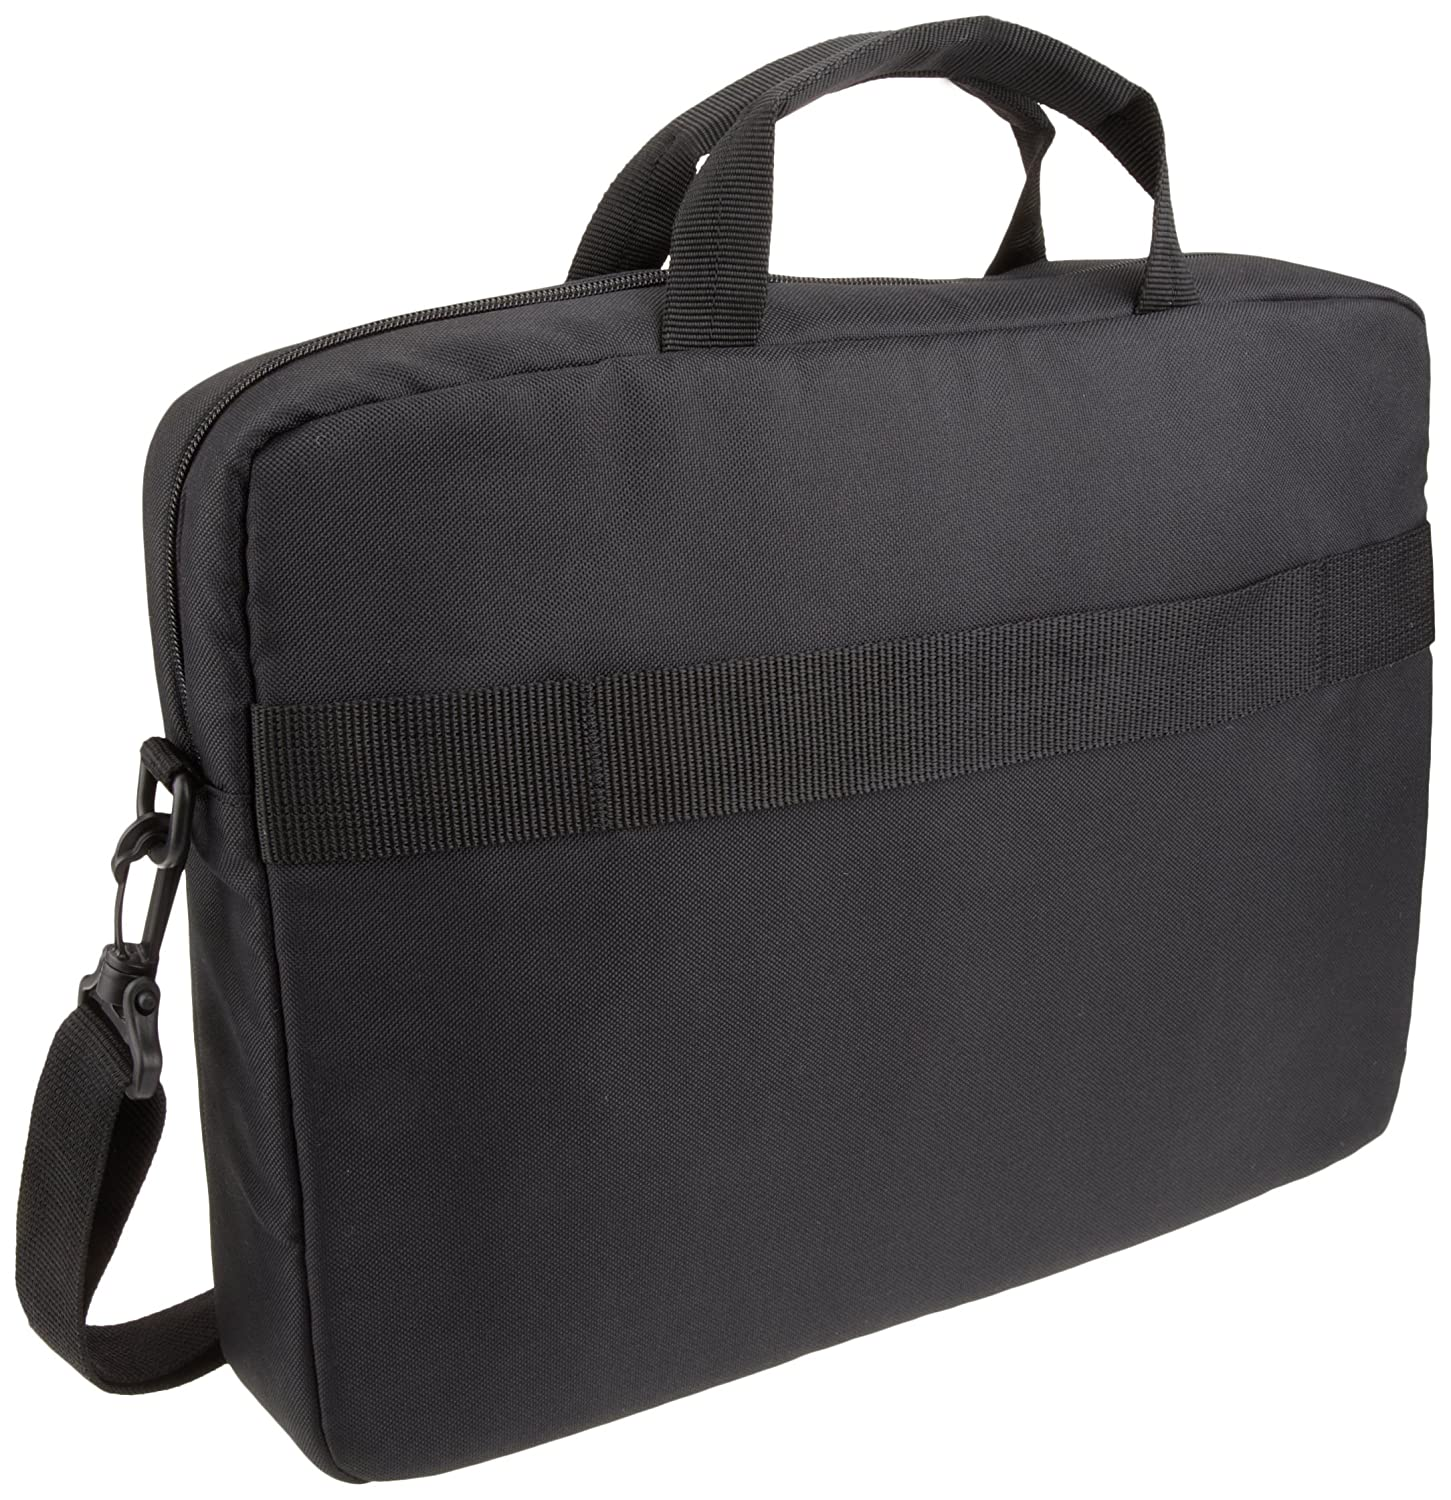 Laptop Bag Amazon - Amazonbasics 15 6 inch laptop and tablet bag buy amazonbasics 15 6 inch laptop and tablet bag online at low price in india amazon in